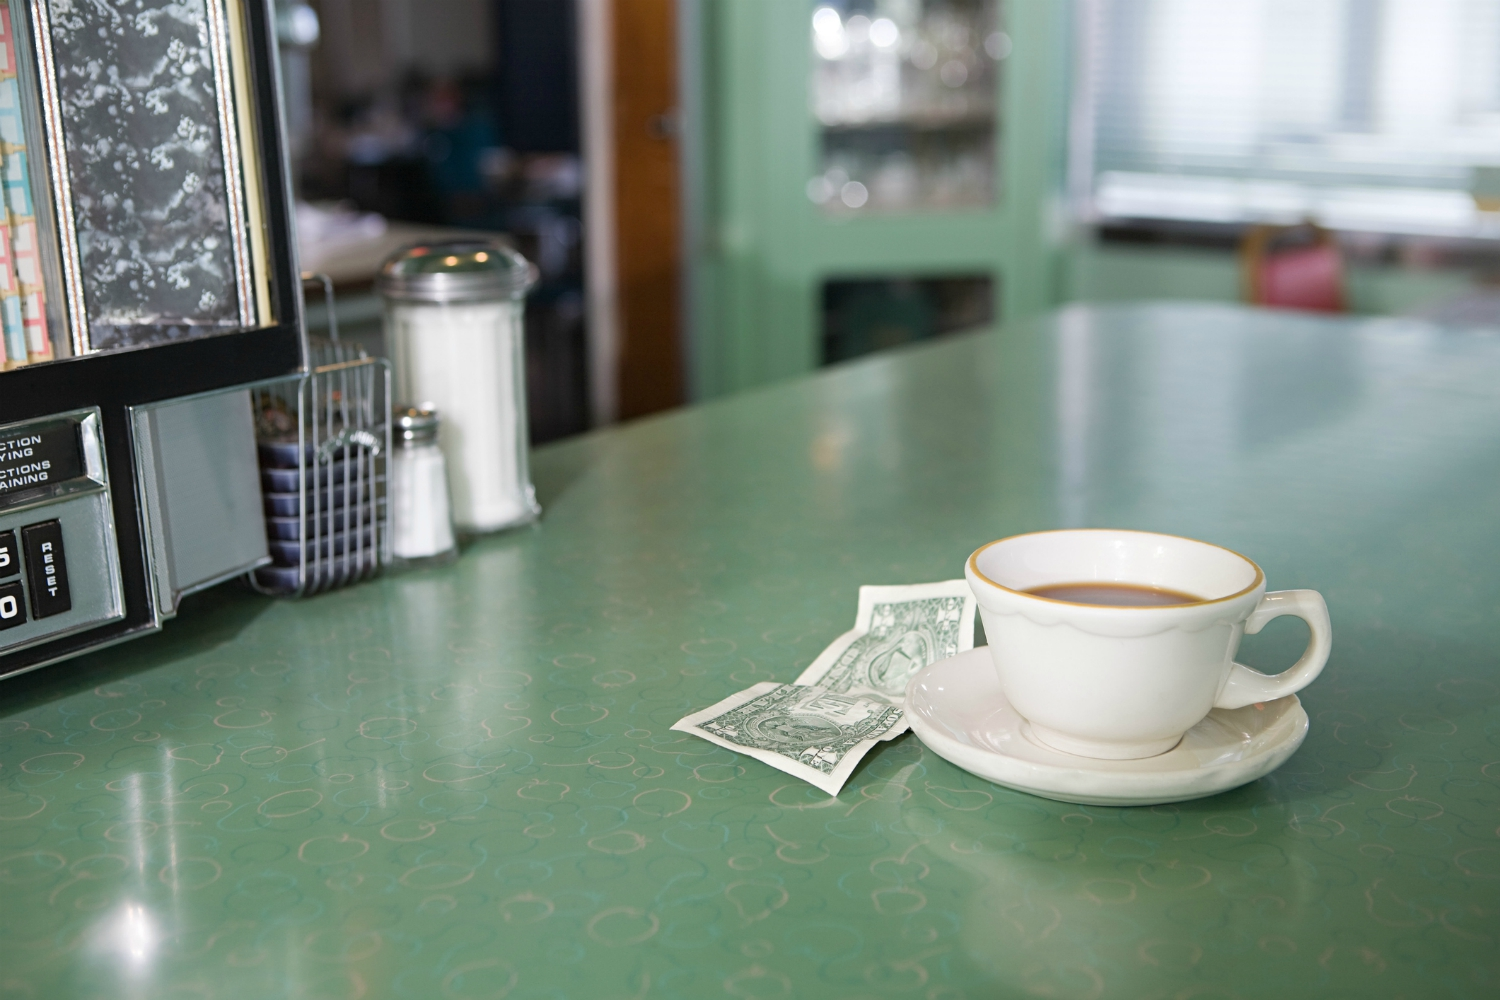 Retro L.A. Diners Where You Can Get a Late-Night Cup of Coffee